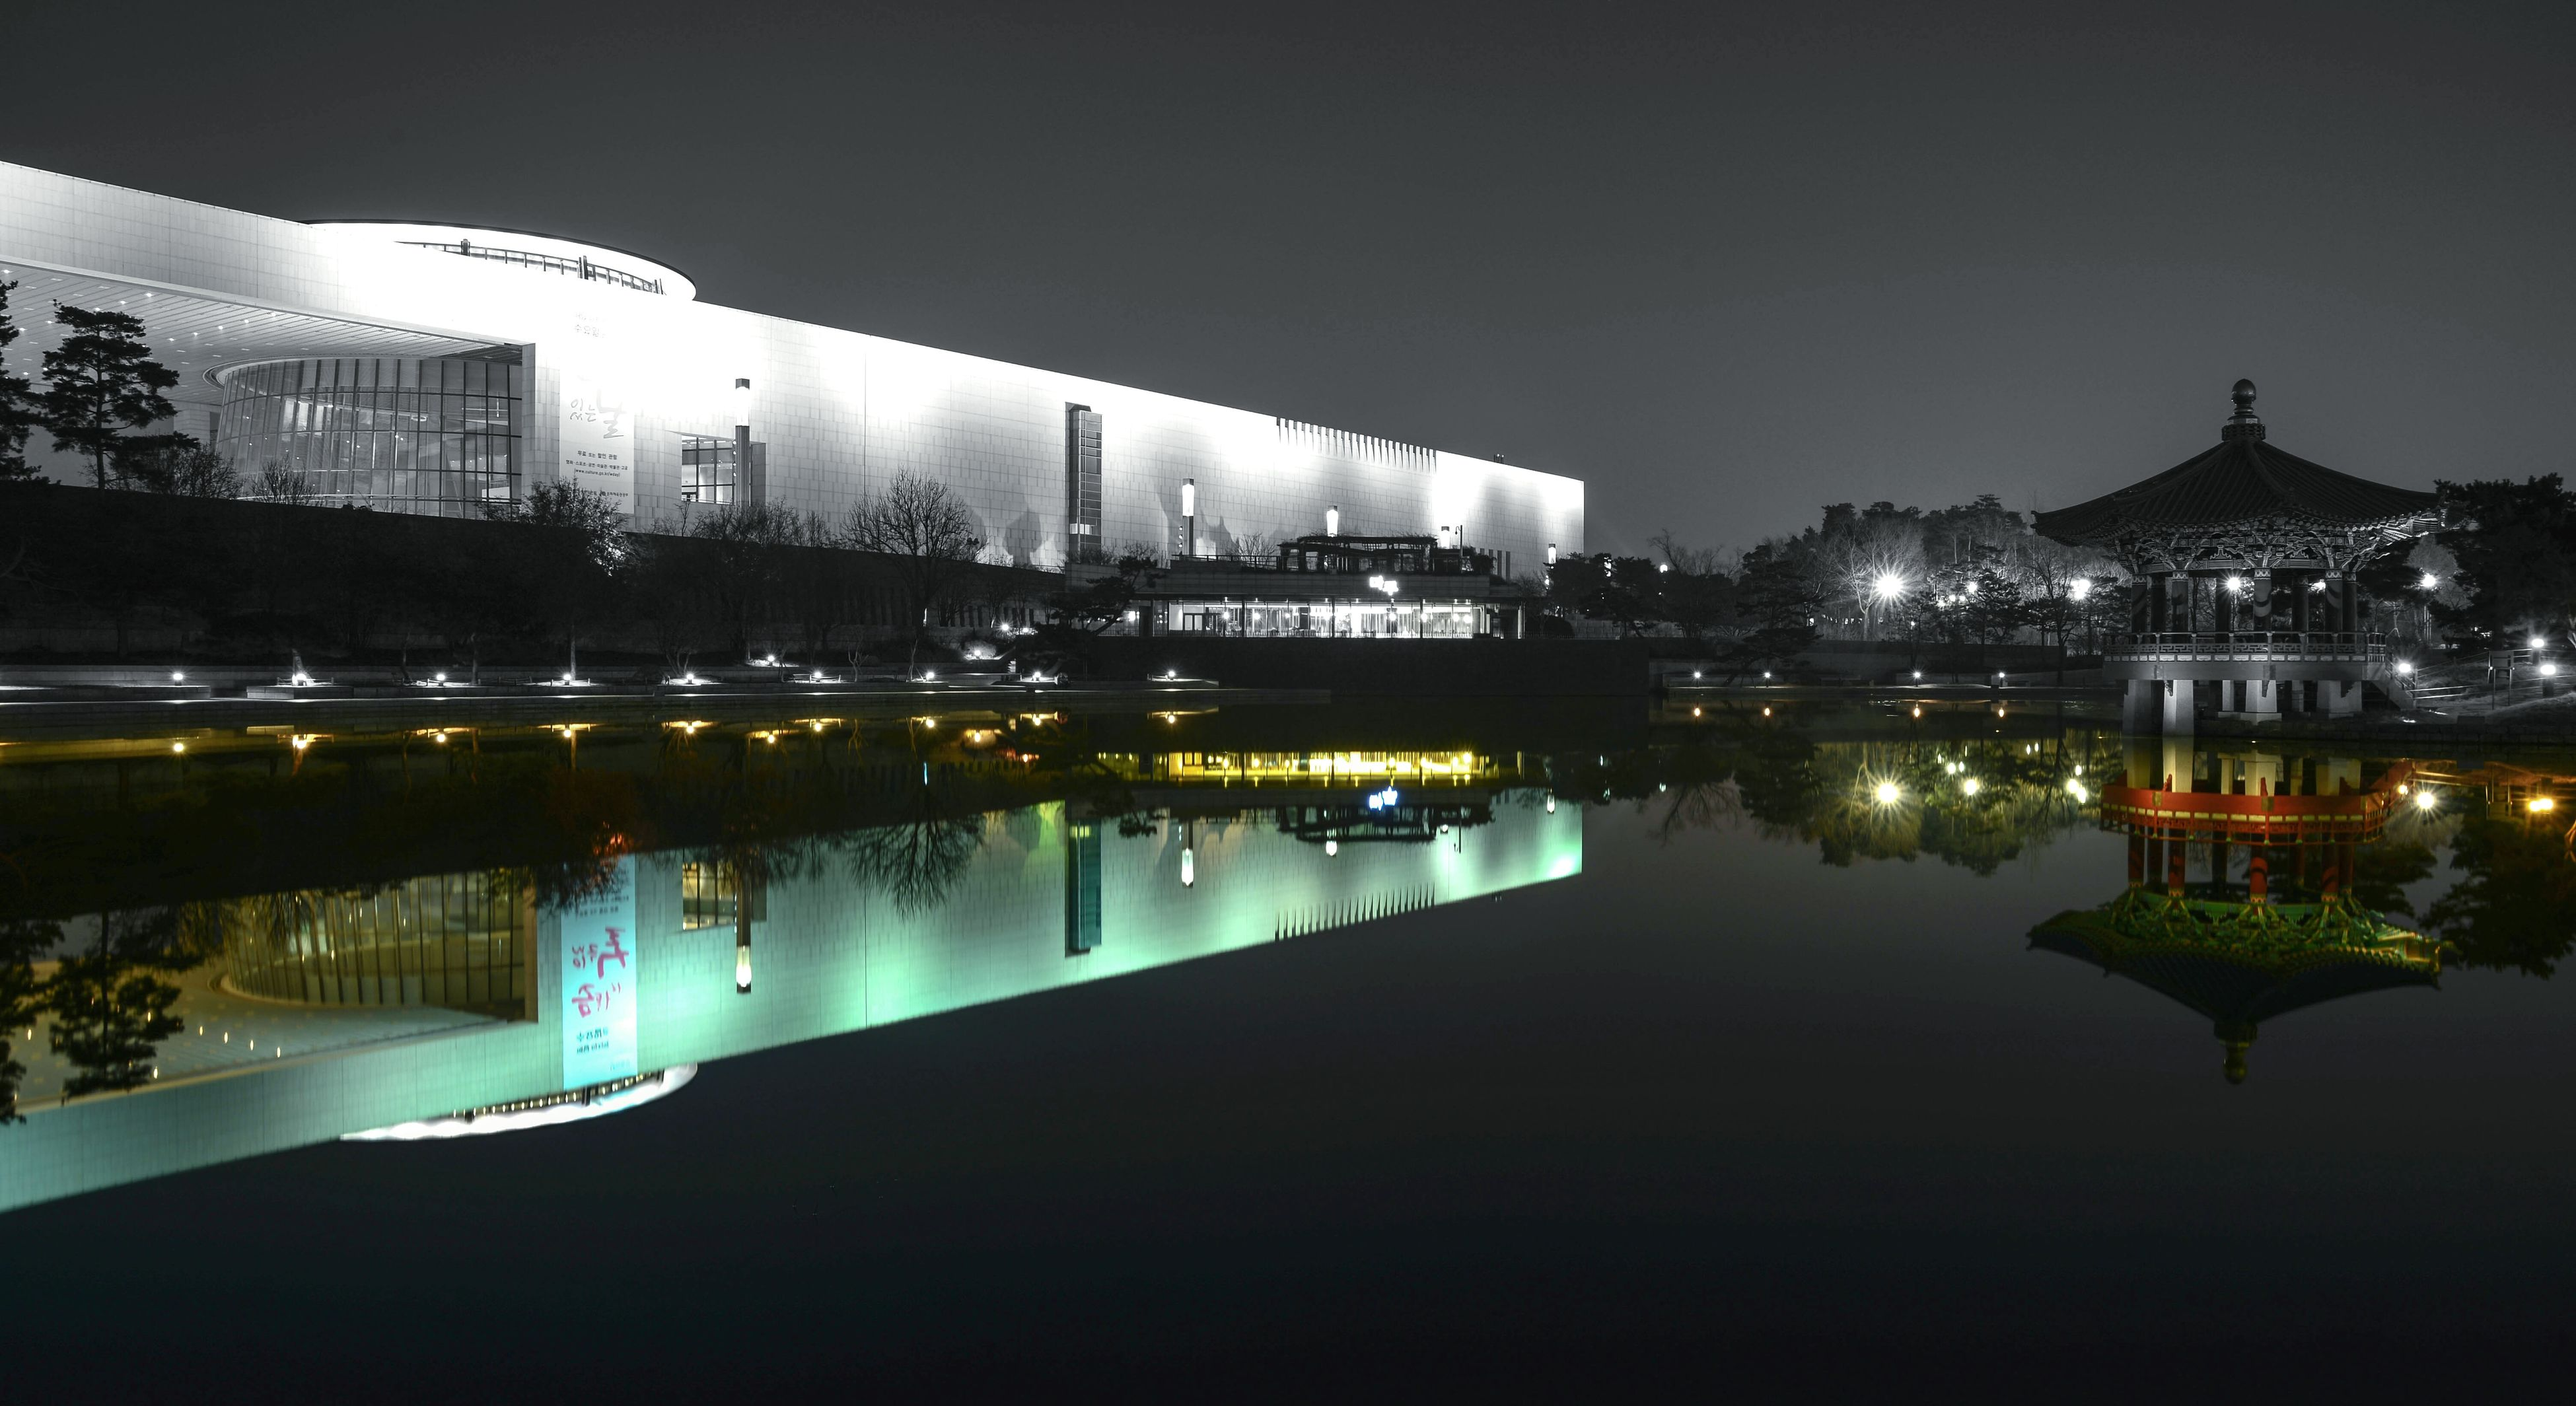 illuminated, architecture, built structure, night, reflection, building exterior, water, clear sky, waterfront, river, city, copy space, sky, standing water, outdoors, residential building, no people, building, residential structure, house